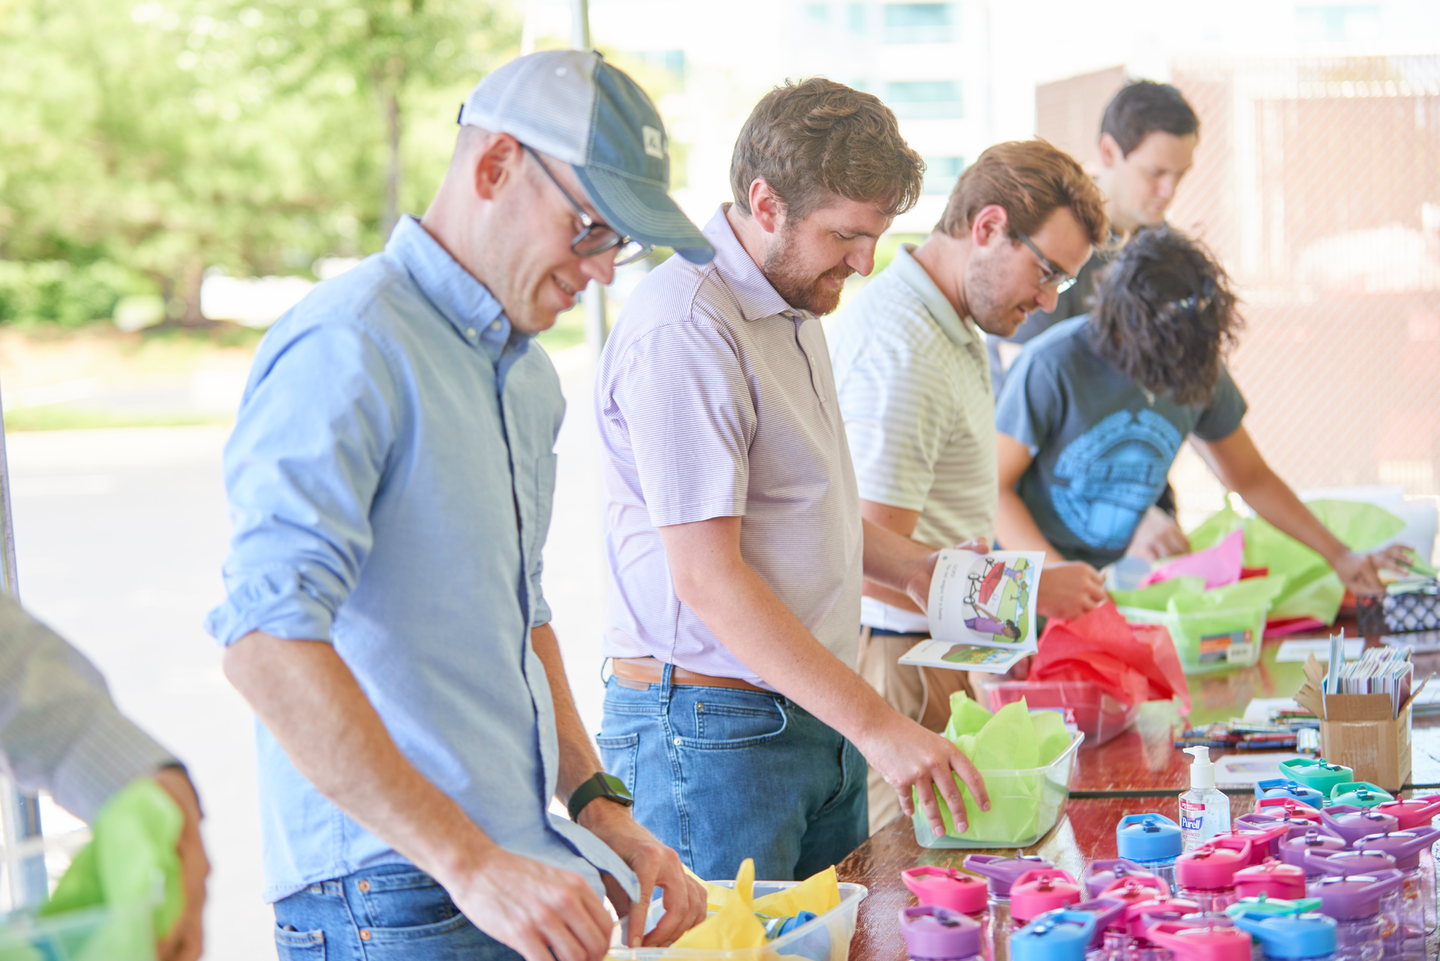 AD Associates are assembling boxes full of toys, coloring books and other activities at one of the buying group's Giving Back event locations on June 16.